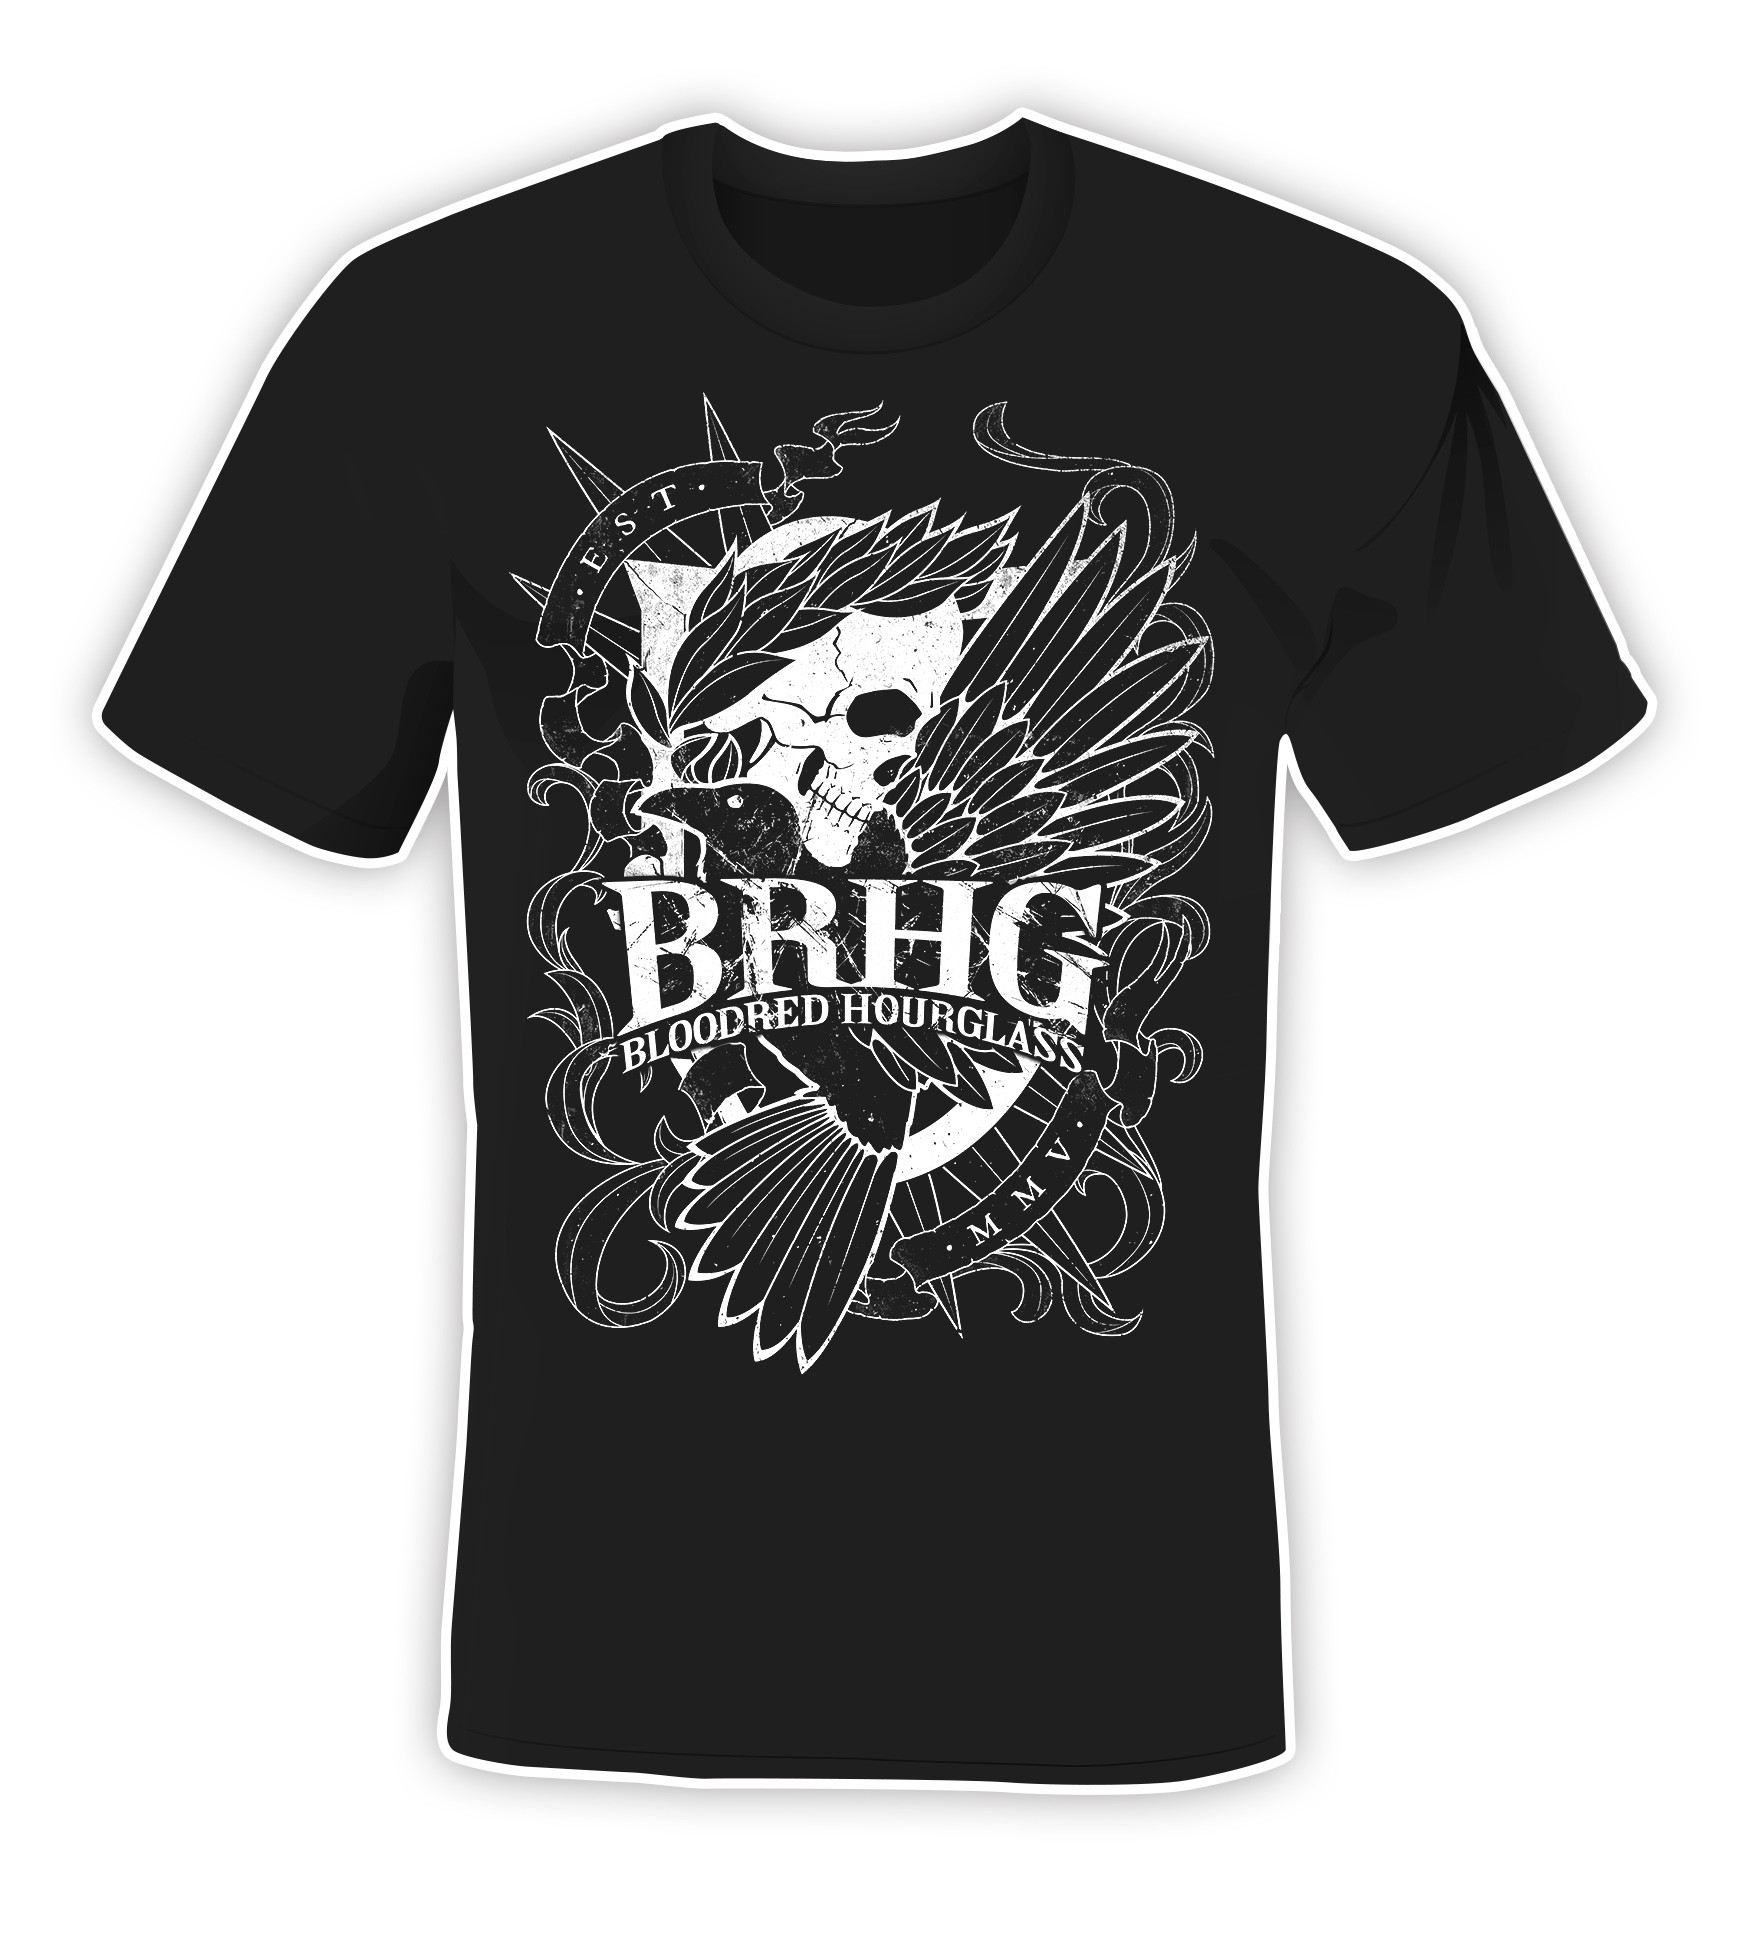 Bloodred Hourglass - BRHG 2019 - T-Shirt